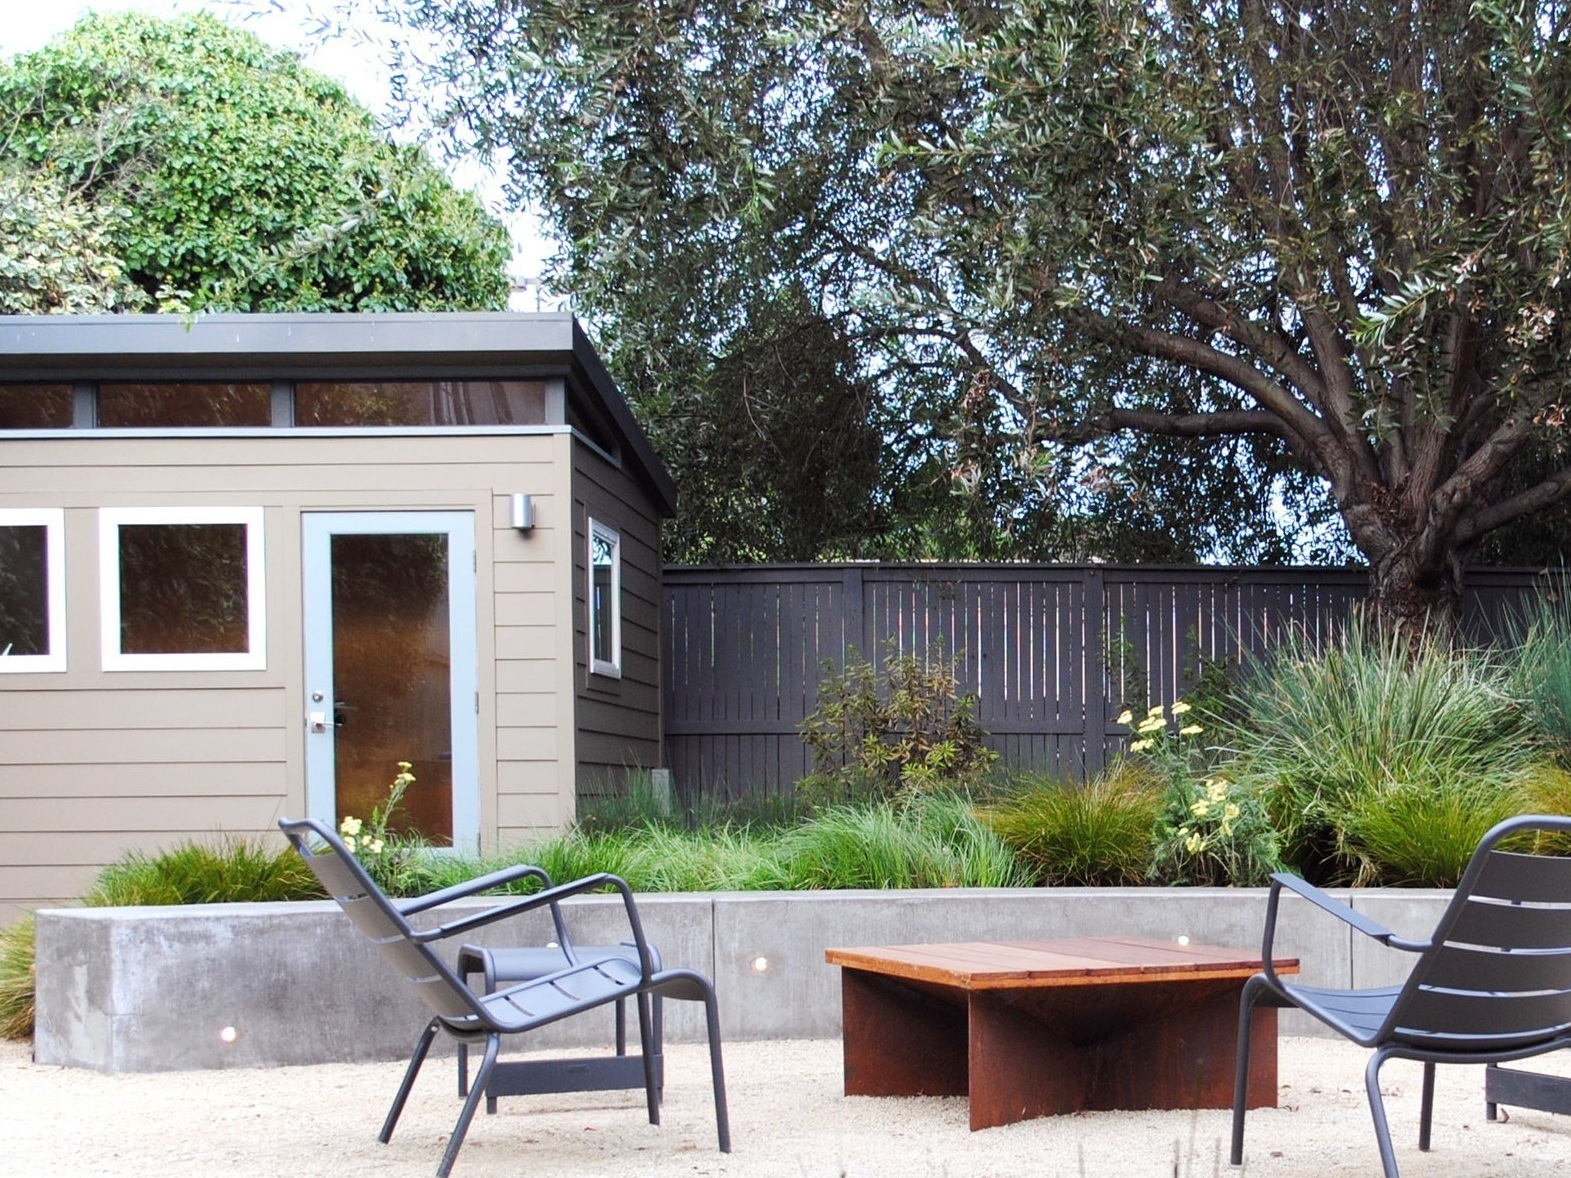 A Lush Family Garden & Cottage - Modernizing an overgrown backyard